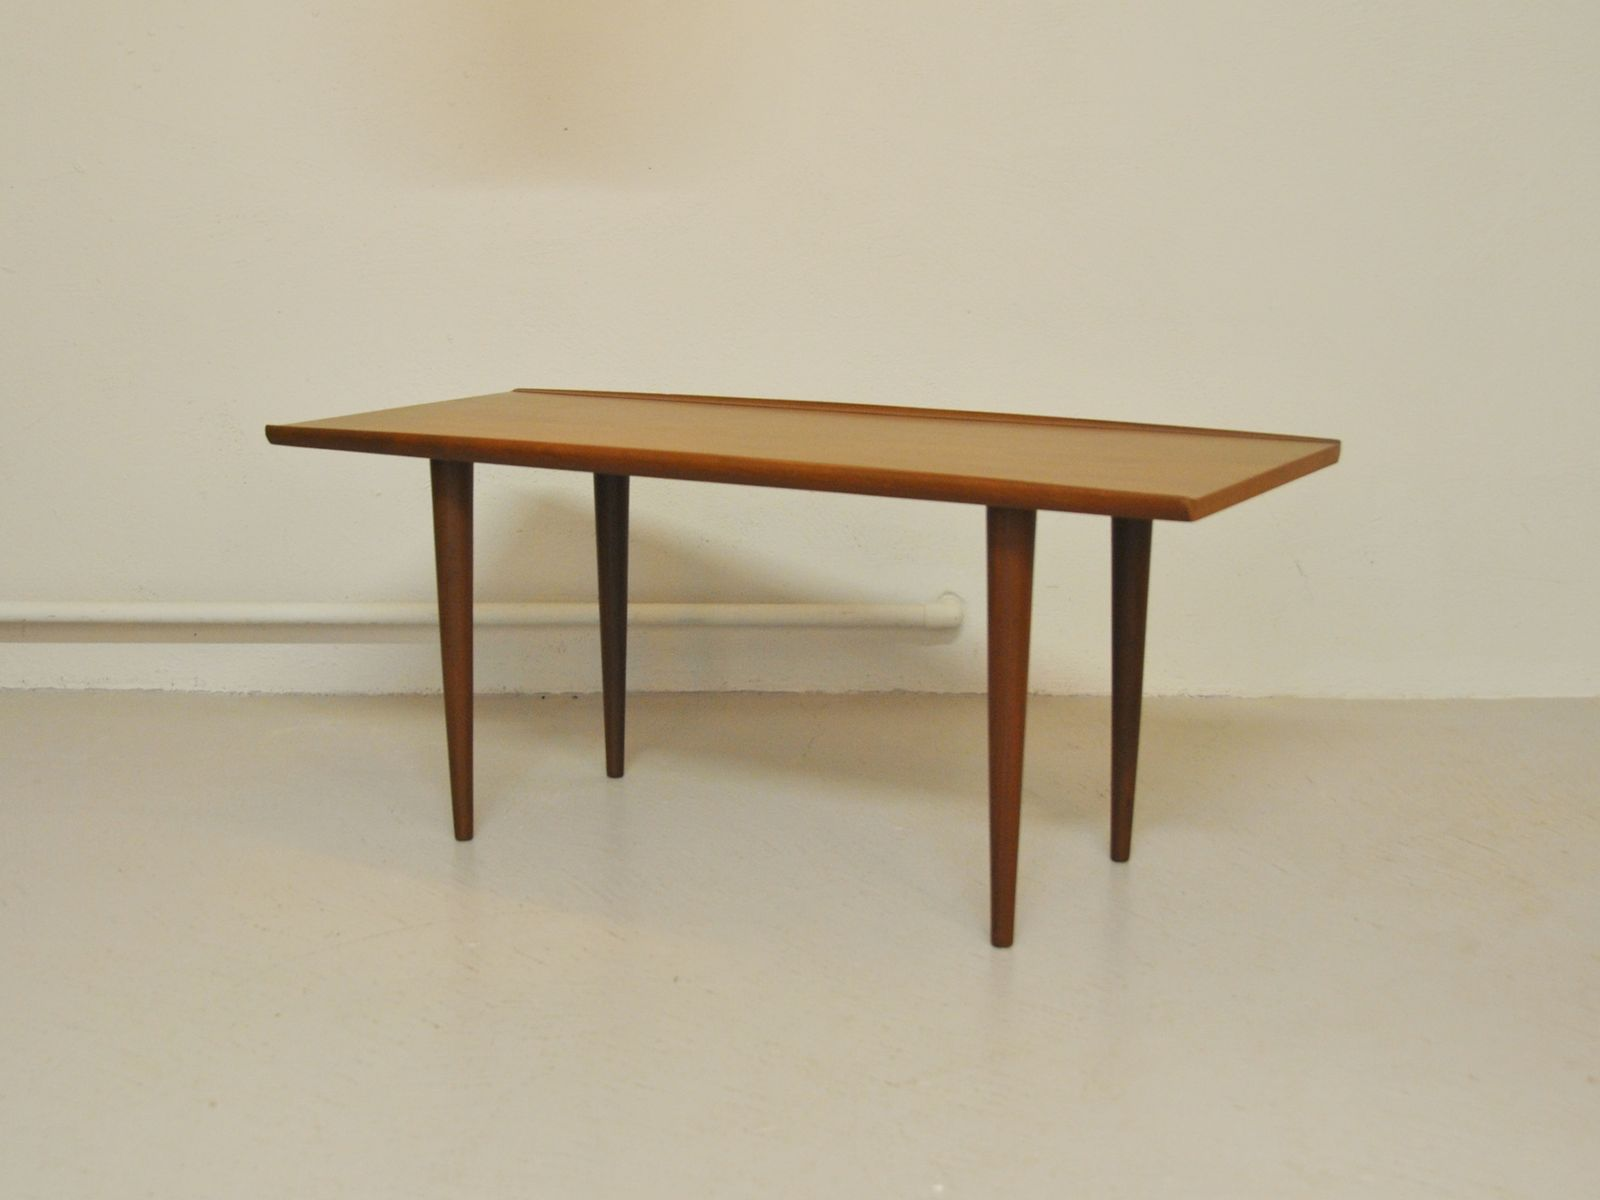 Scandinavian Curved Edge Teak Coffee Table for sale at Pamono